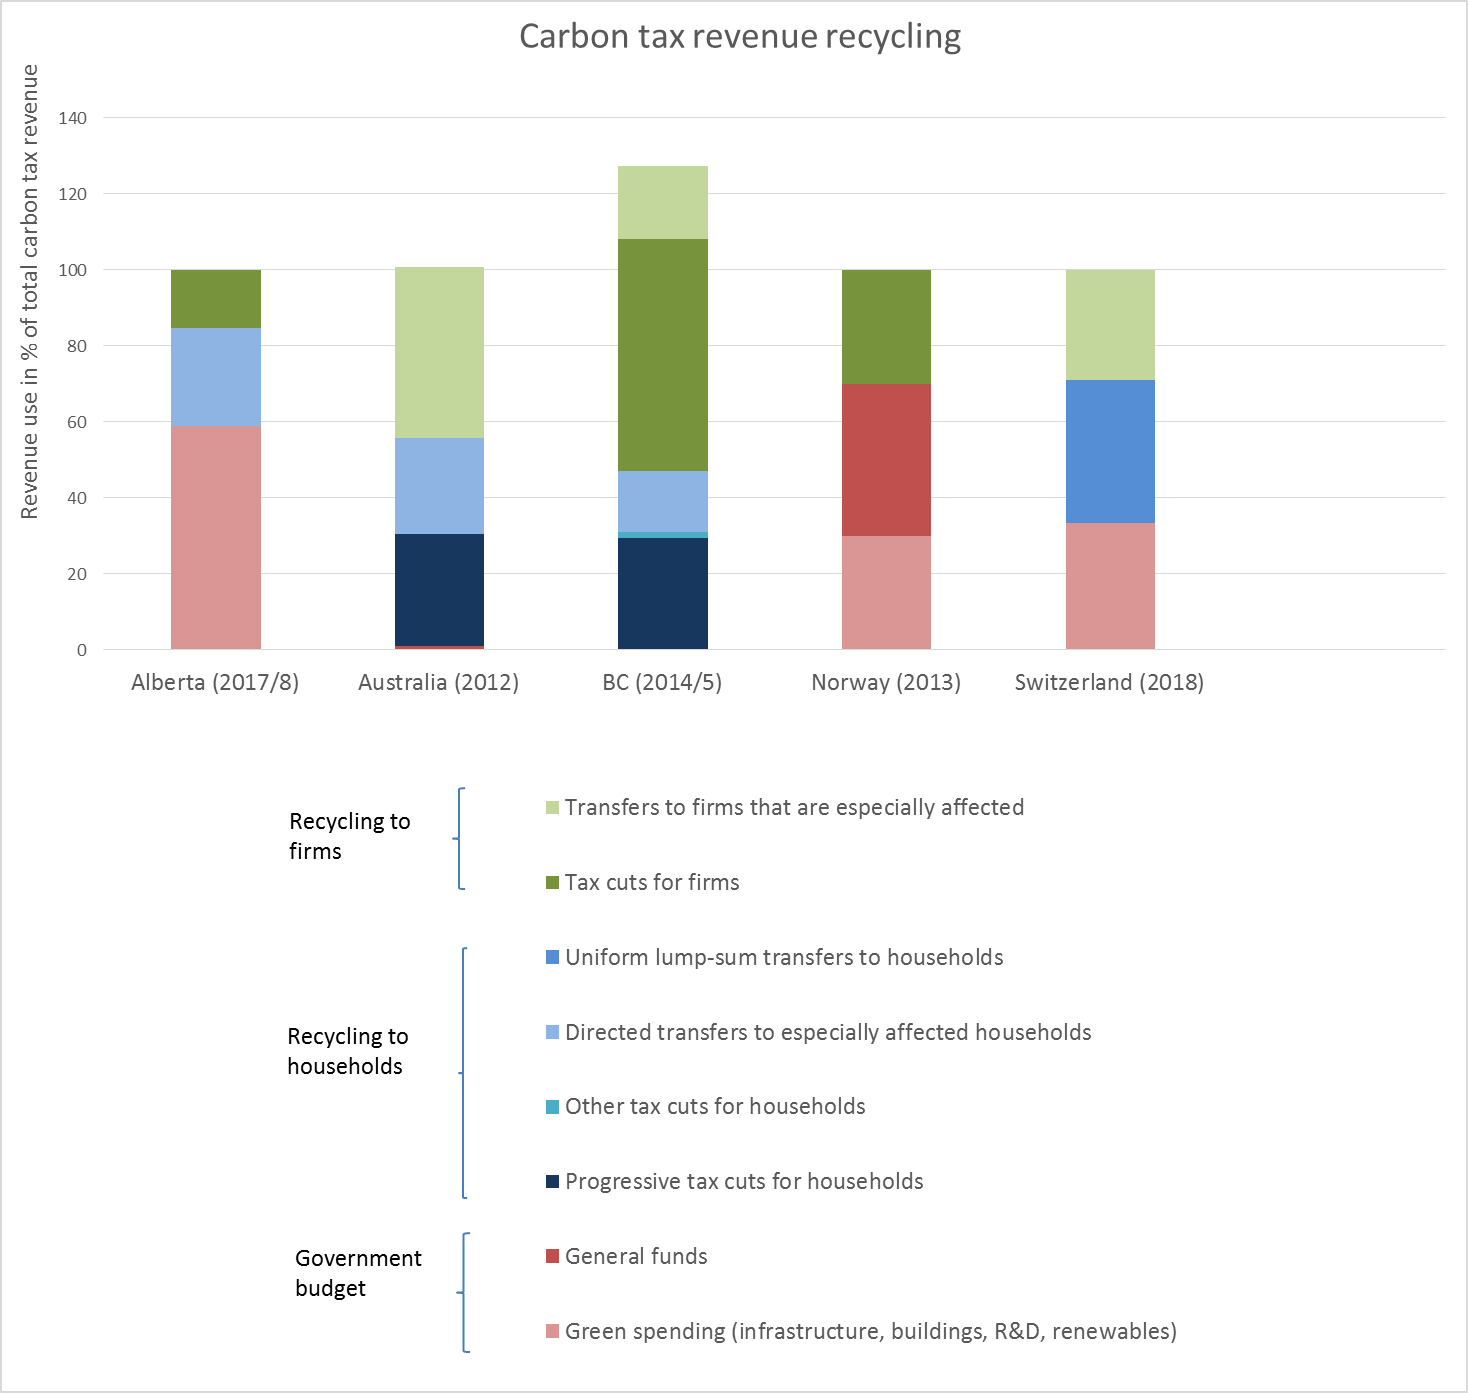 Figure 2: Revenue recycling in different carbon tax schemes